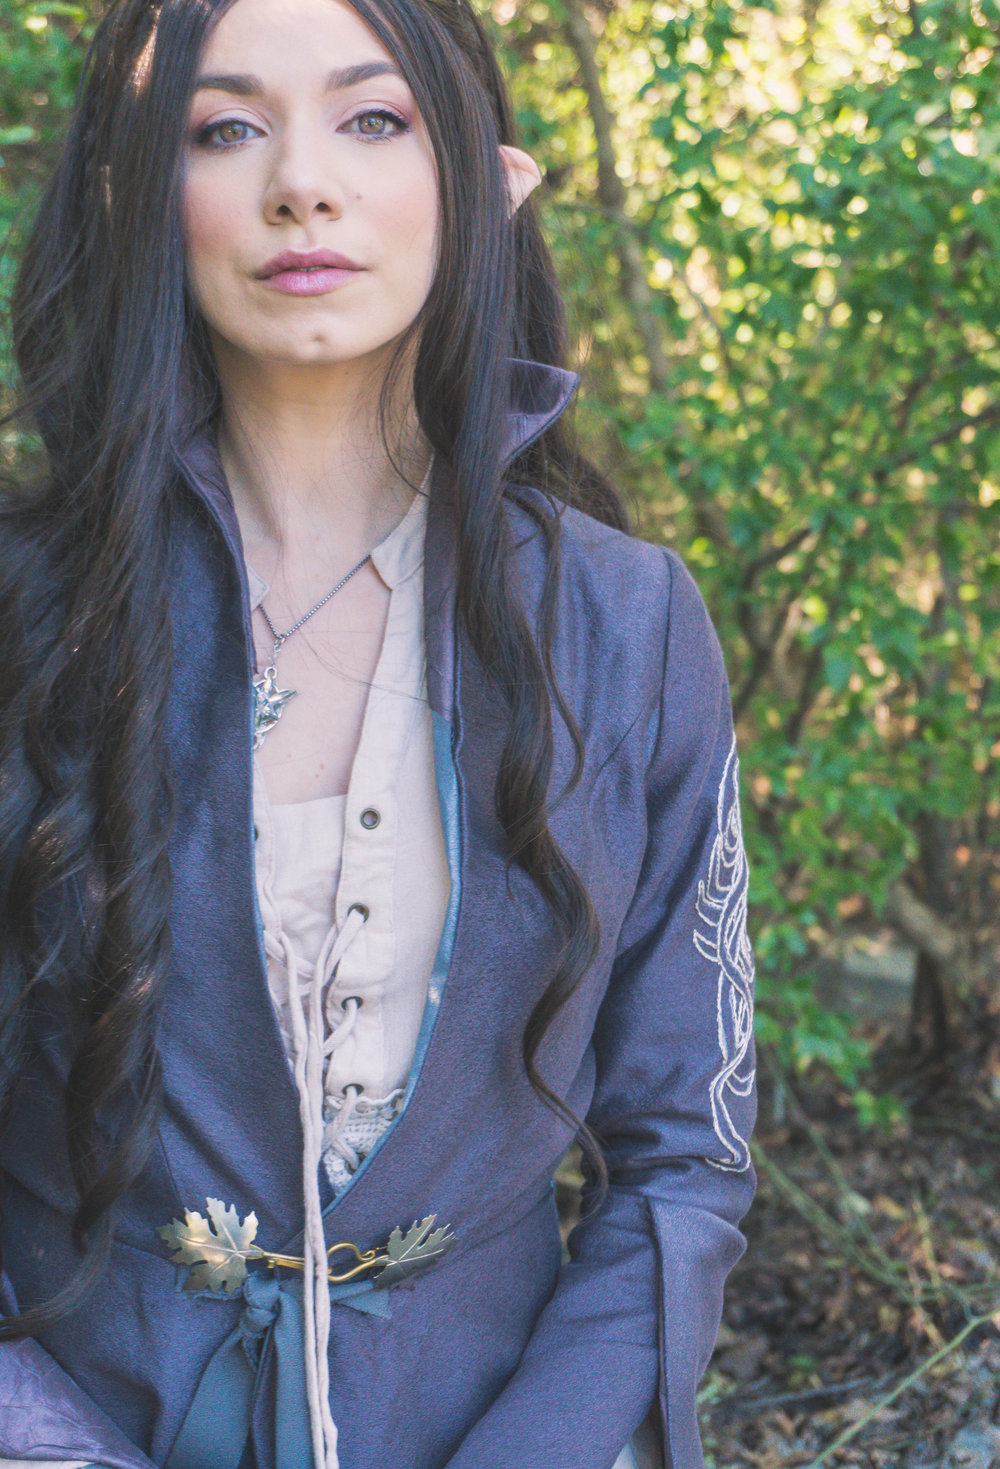 """""""For I am the daughter of Elrond. I shall not go with him when he departs to the Havens: for mine is the choice of Luthien, and as she so have I chosen, both the sweet and the bitter."""" """"It is mine to give to whom I will, like my heart."""""""